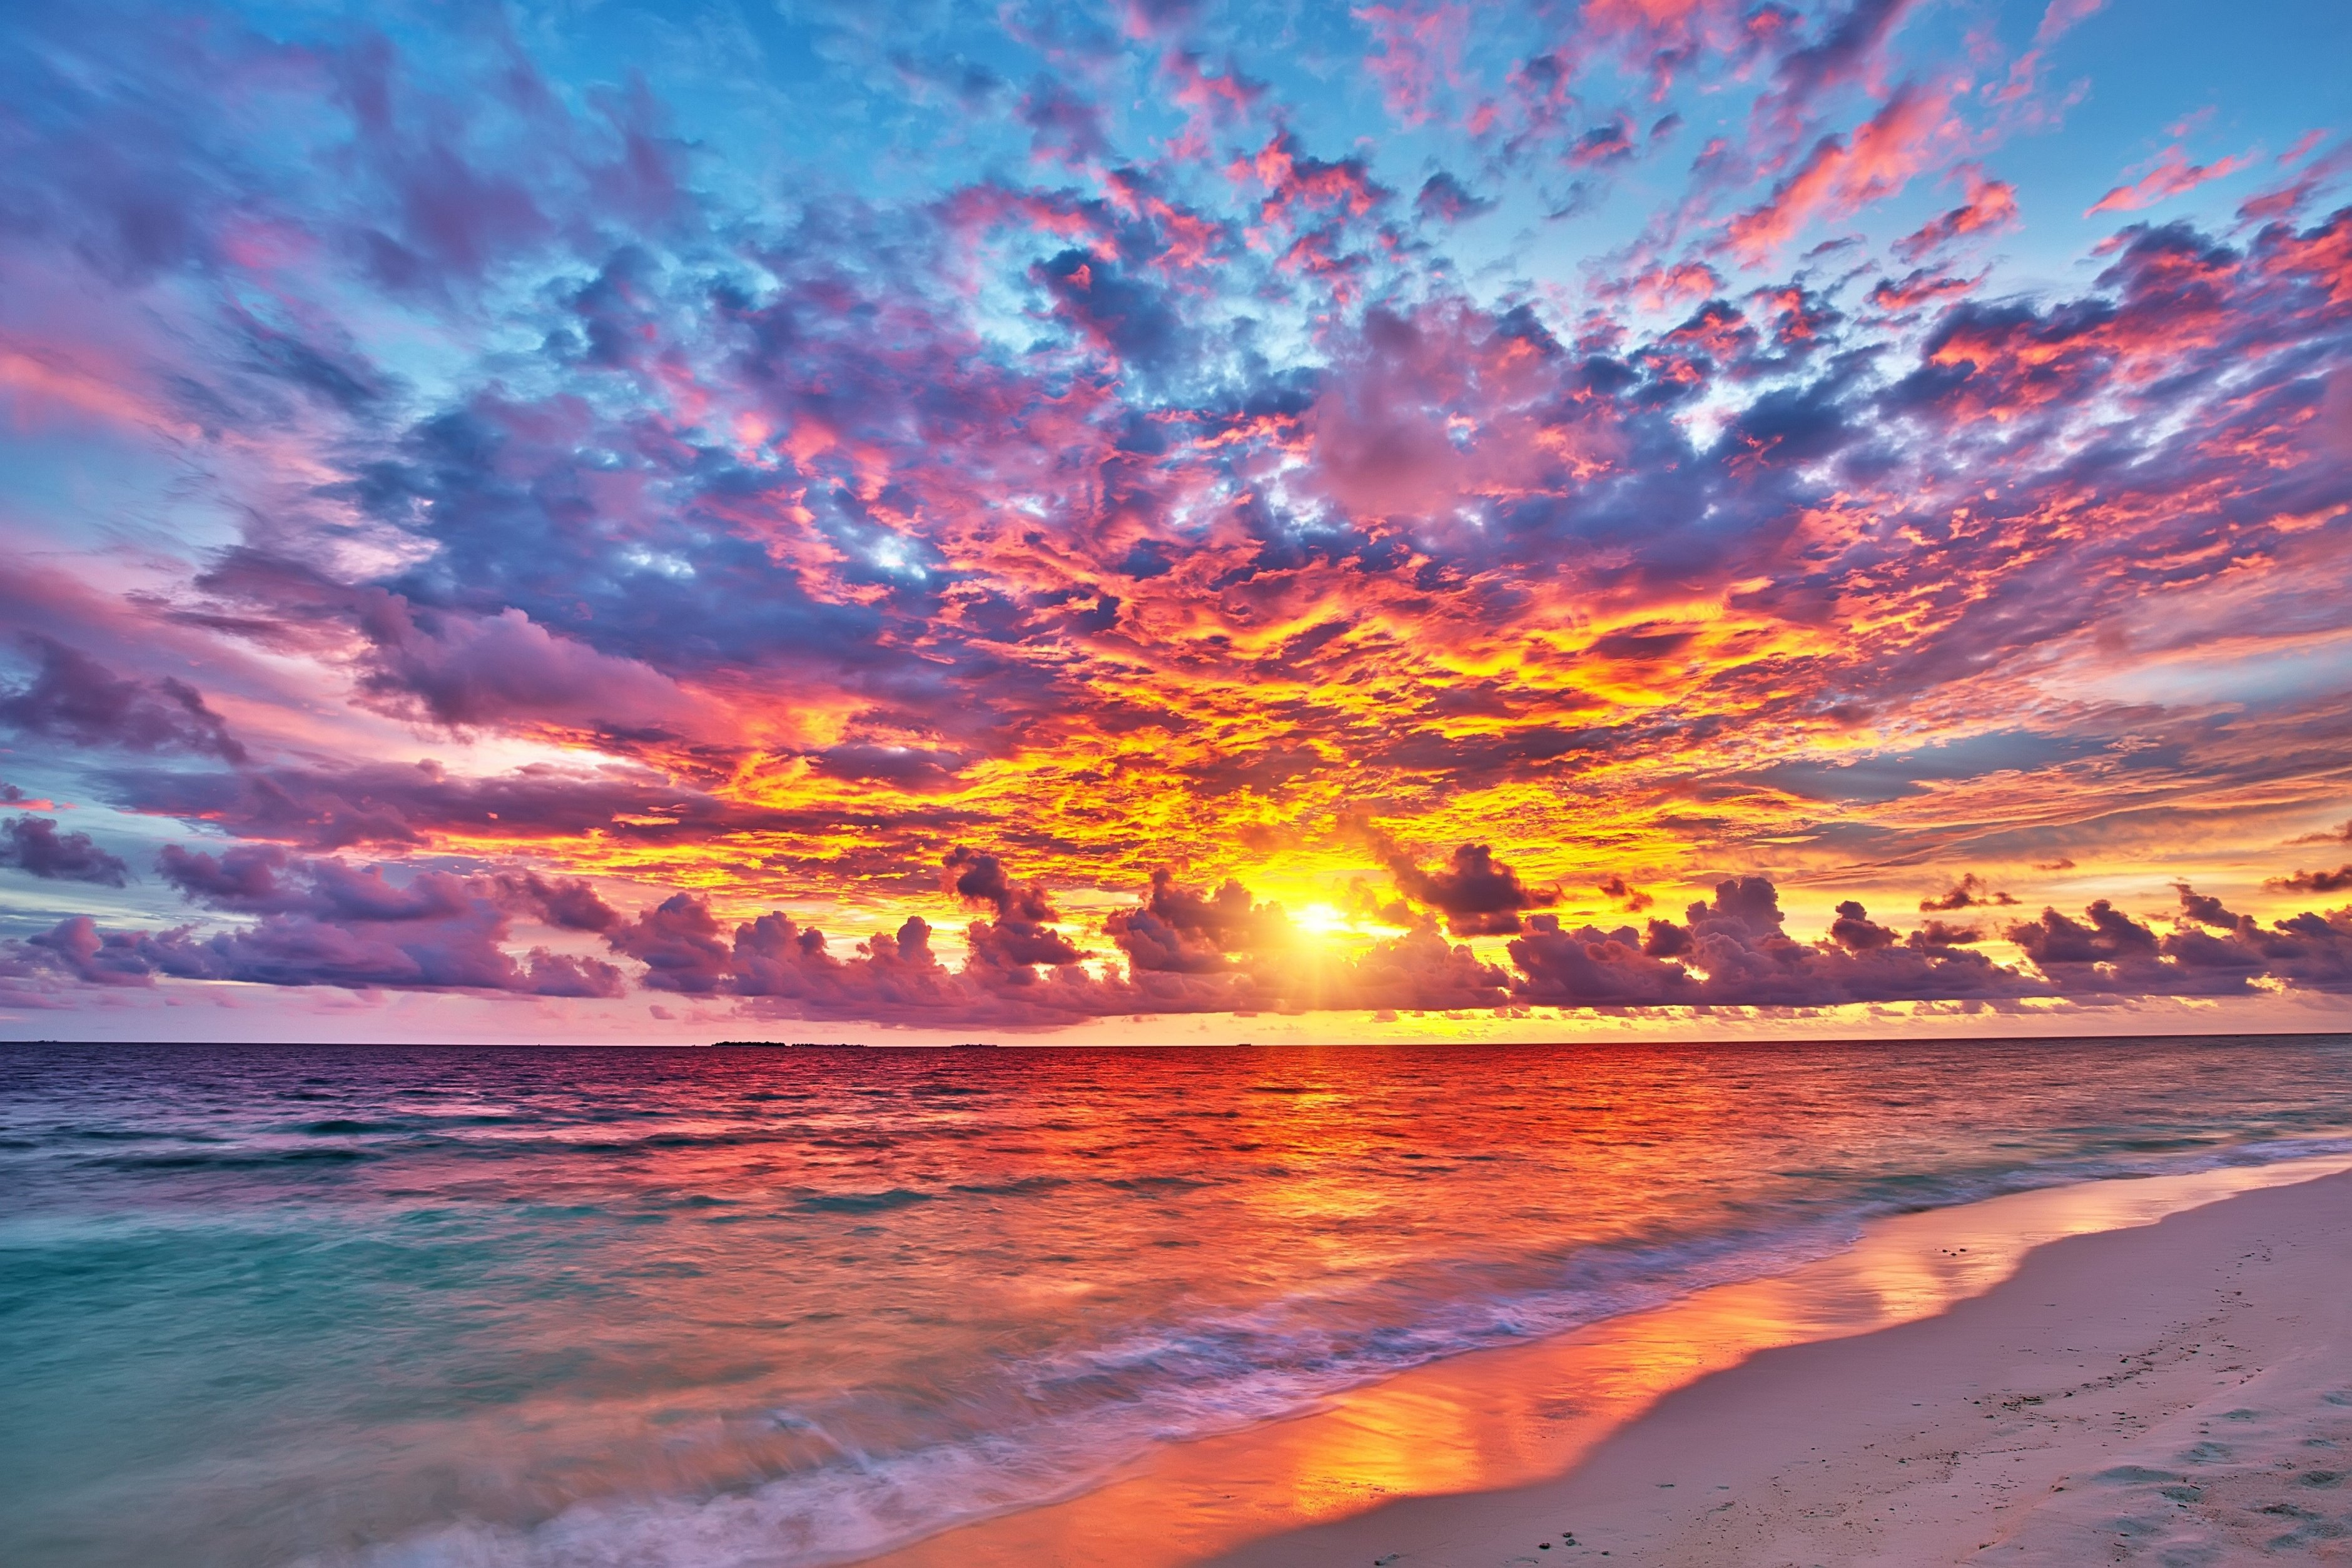 Colorful sunset over ocean on Maldives  S.Borisov  photography